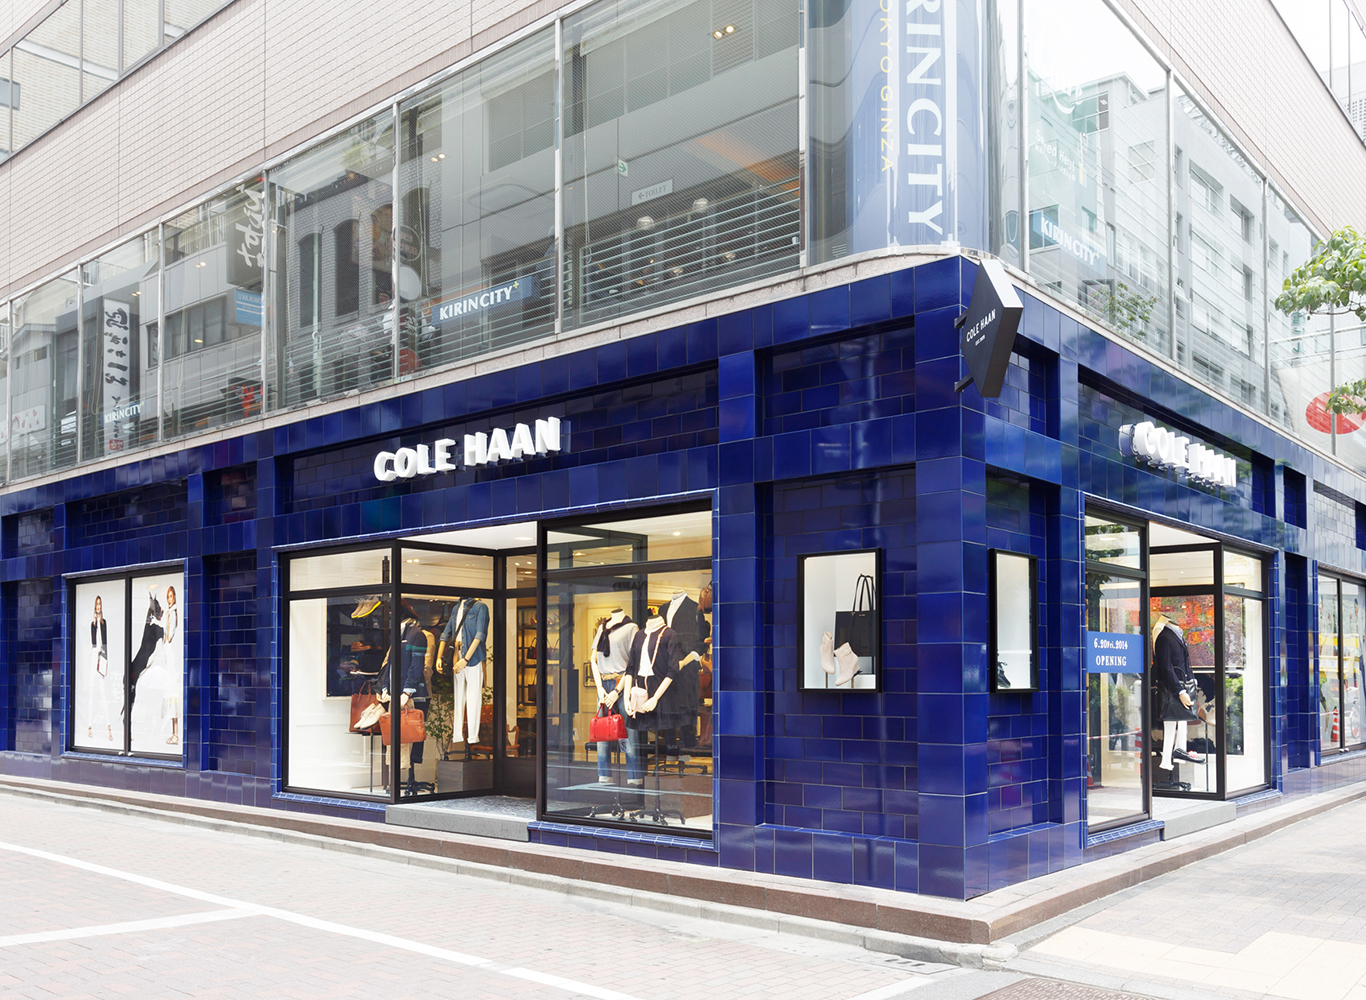 d7043808a86 Hours of operation will be open from Monday-Sunday 11:00-20:00, and the  phone number is +81 (3) 6228- 7417. Visit ColeHaan.co.jp to learn more  about Cole ...